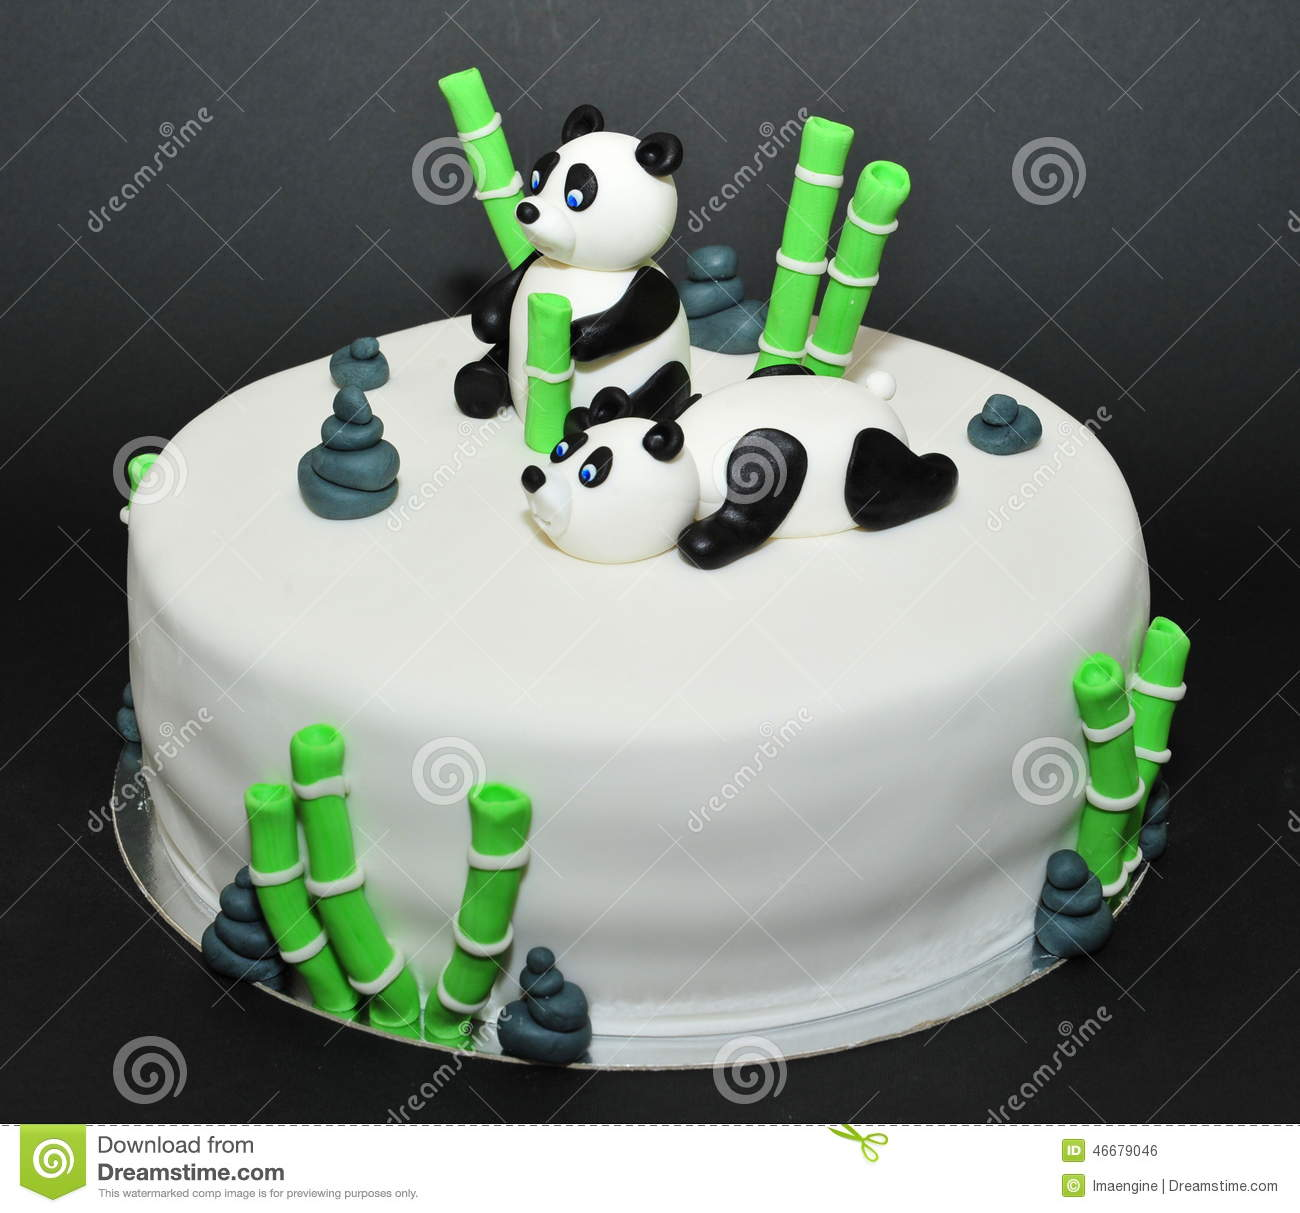 panda birthday cake template ; panda-bears-fondant-birthday-cake-beautifully-crafted-figurines-46679046